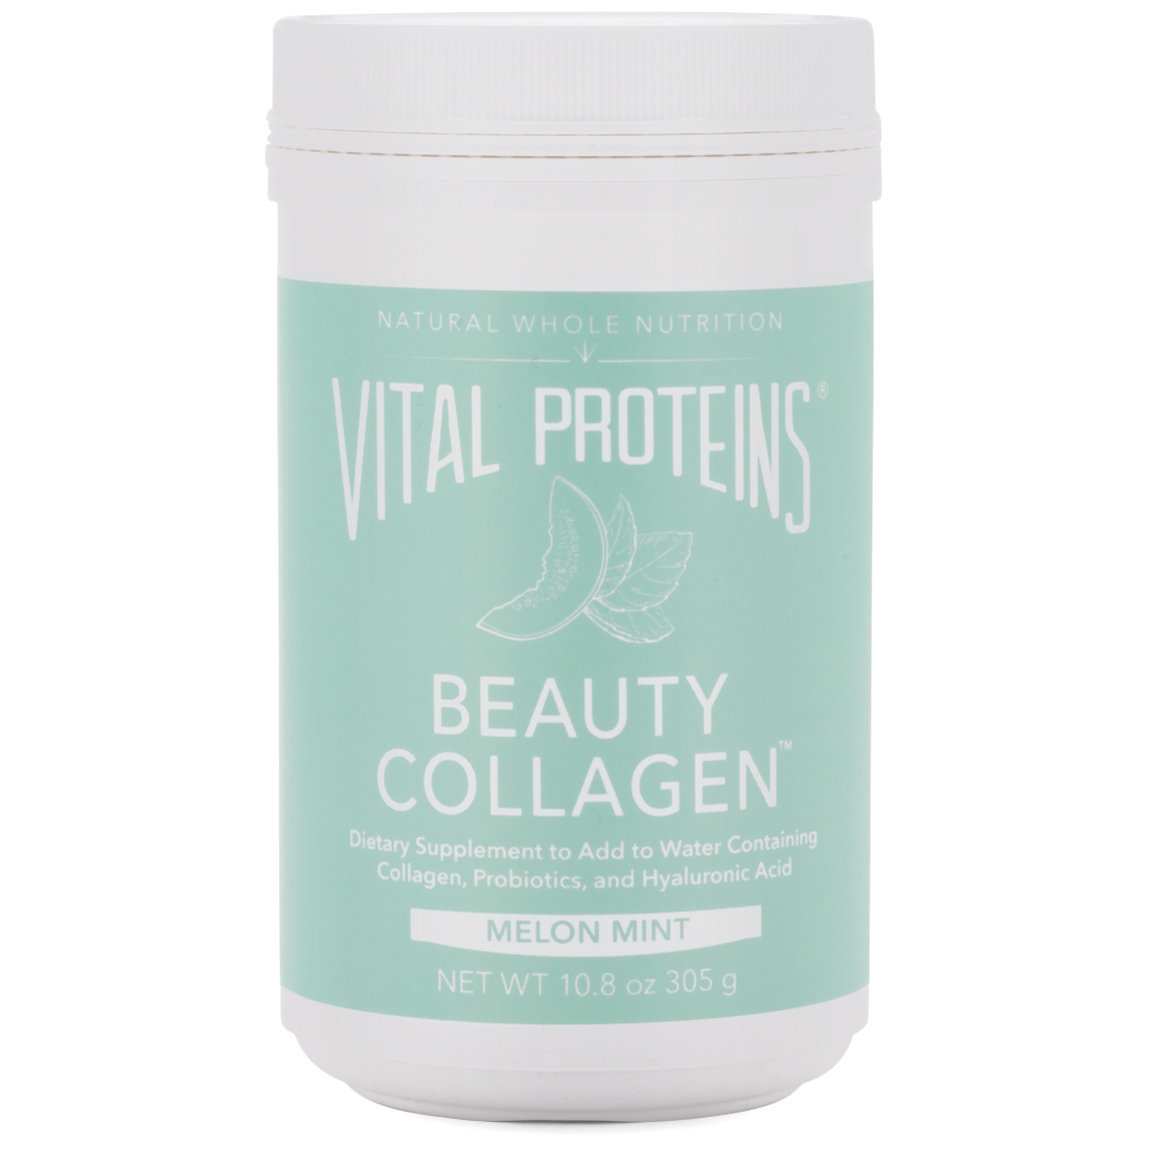 Vital Proteins Beauty Collagen - Melon Mint 10.8 oz product swatch.